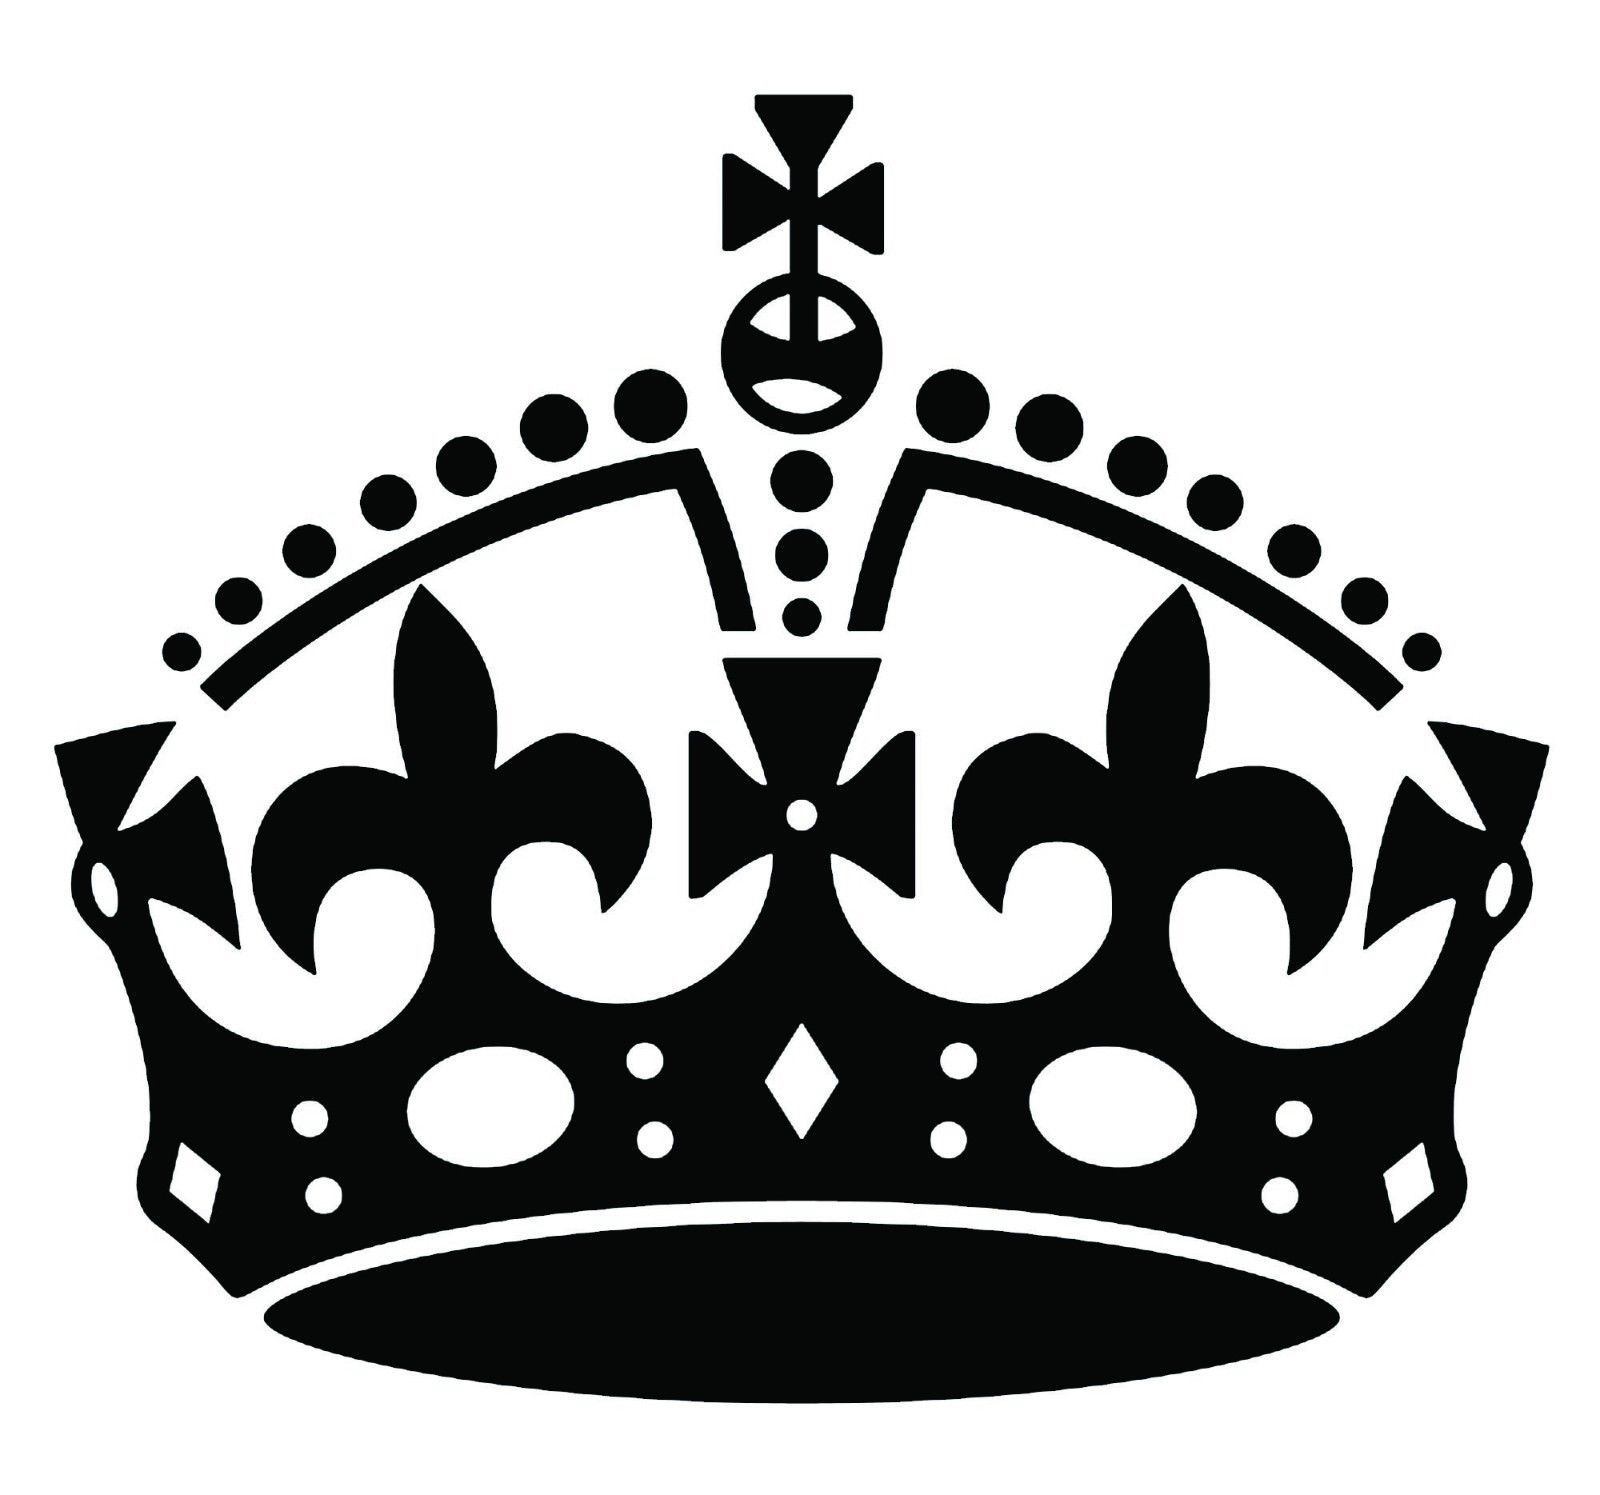 Crown Clipart Black And White – Find high quality crown clipart black and white, all png clipart images with transparent backgroud can be download for free!